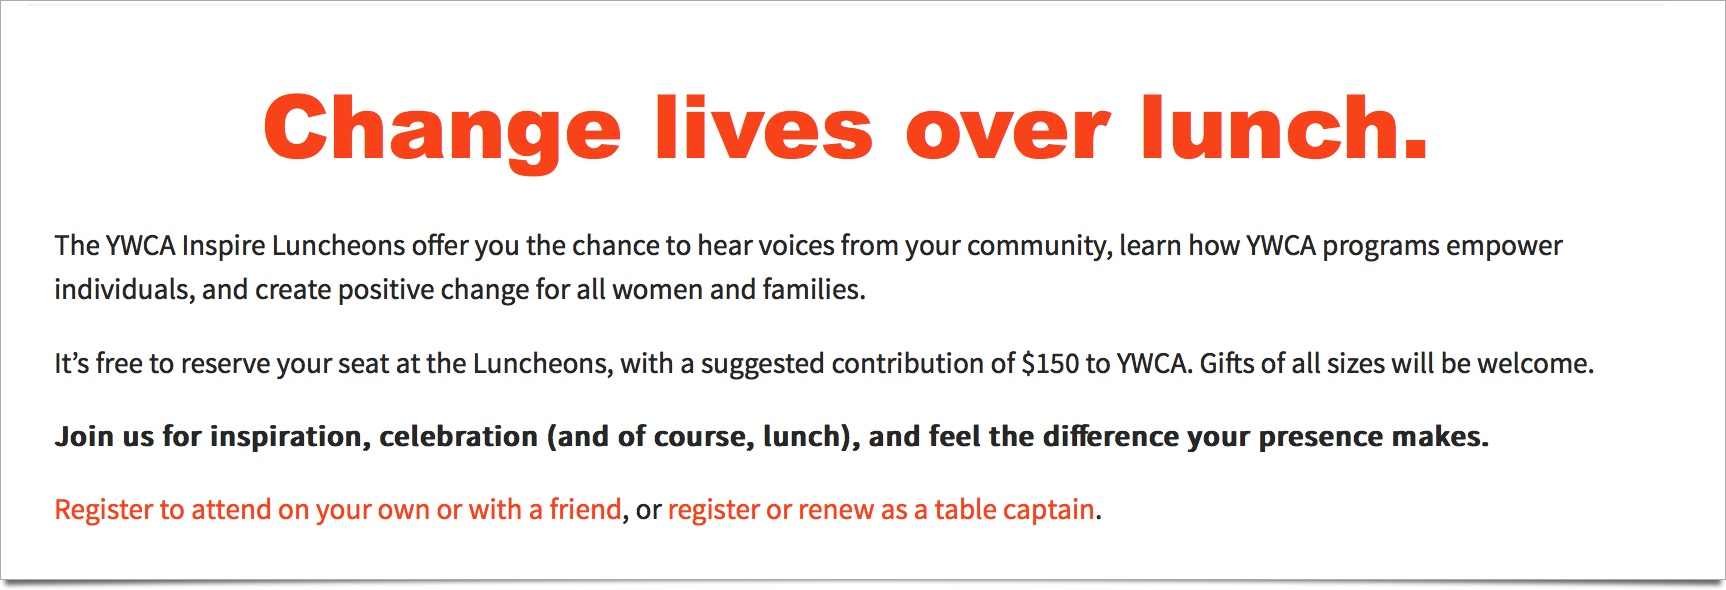 YWCA Fundraiser Luncheons Page Hero Image with Dropshadow